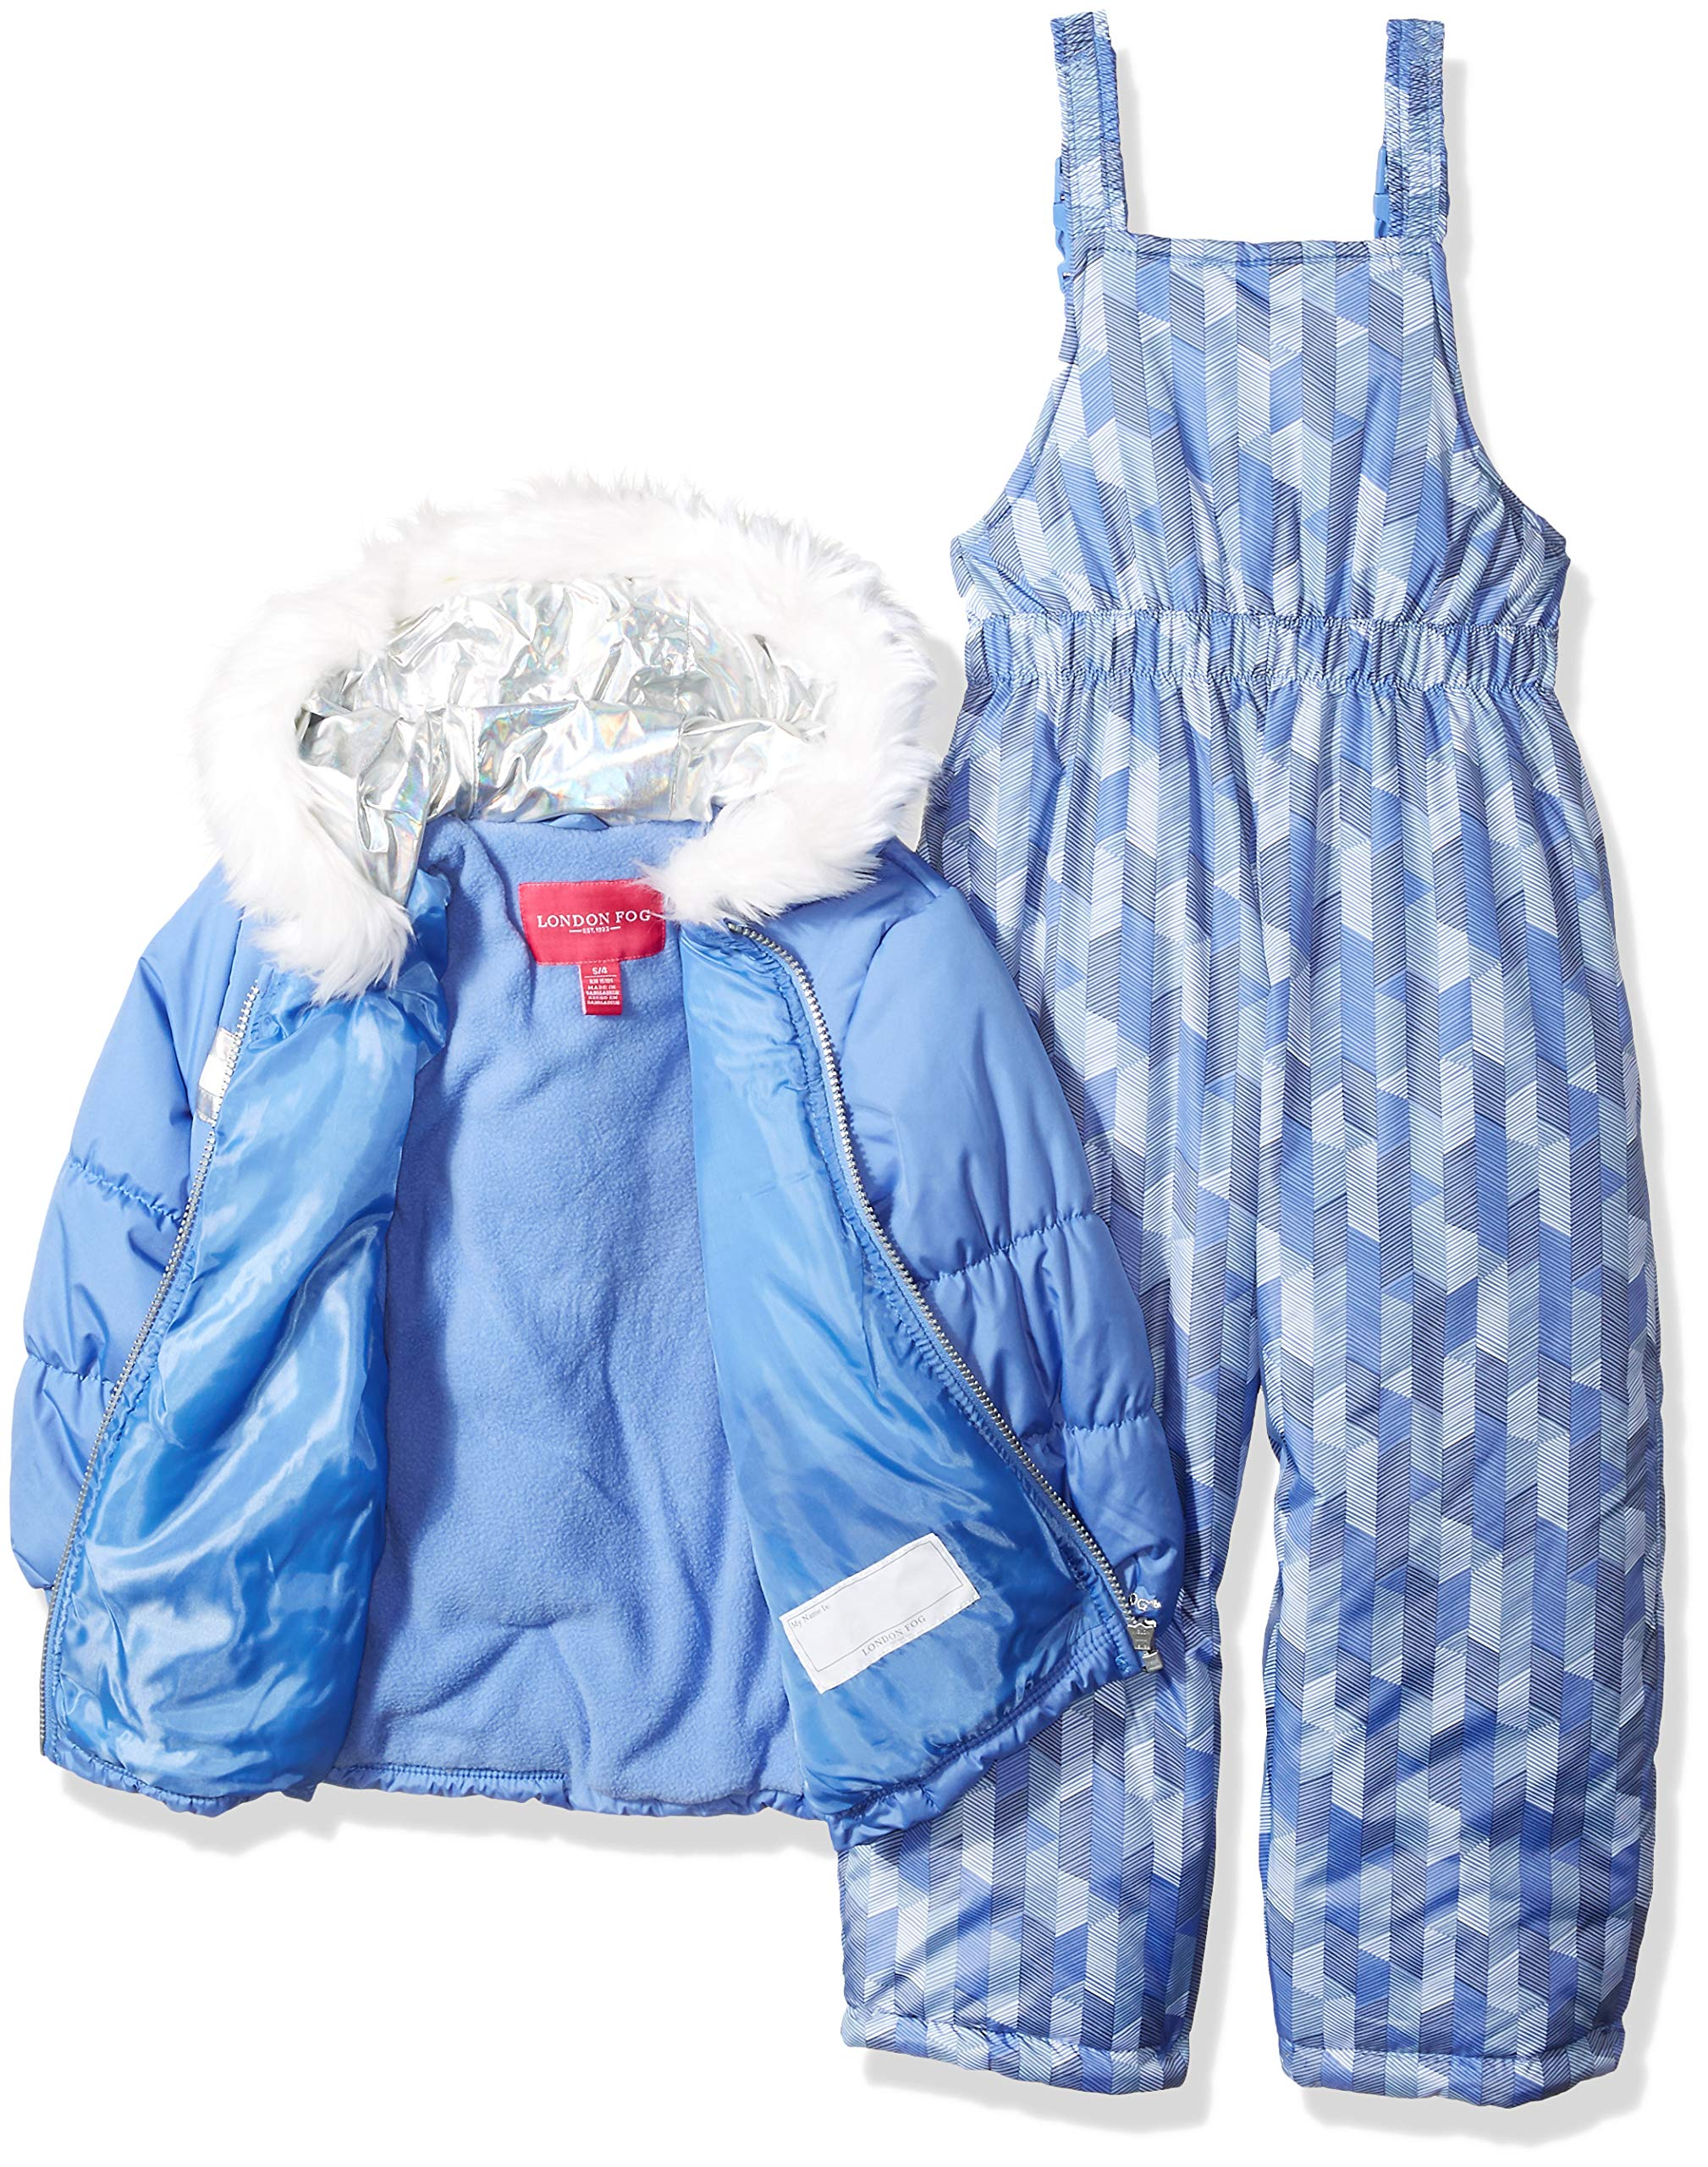 London Fog Girls' Little' Snowsuit with Snowbib and Puffer Jacket, Lavender Blue Periwinkle, 5/6 by London Fog (Image #2)